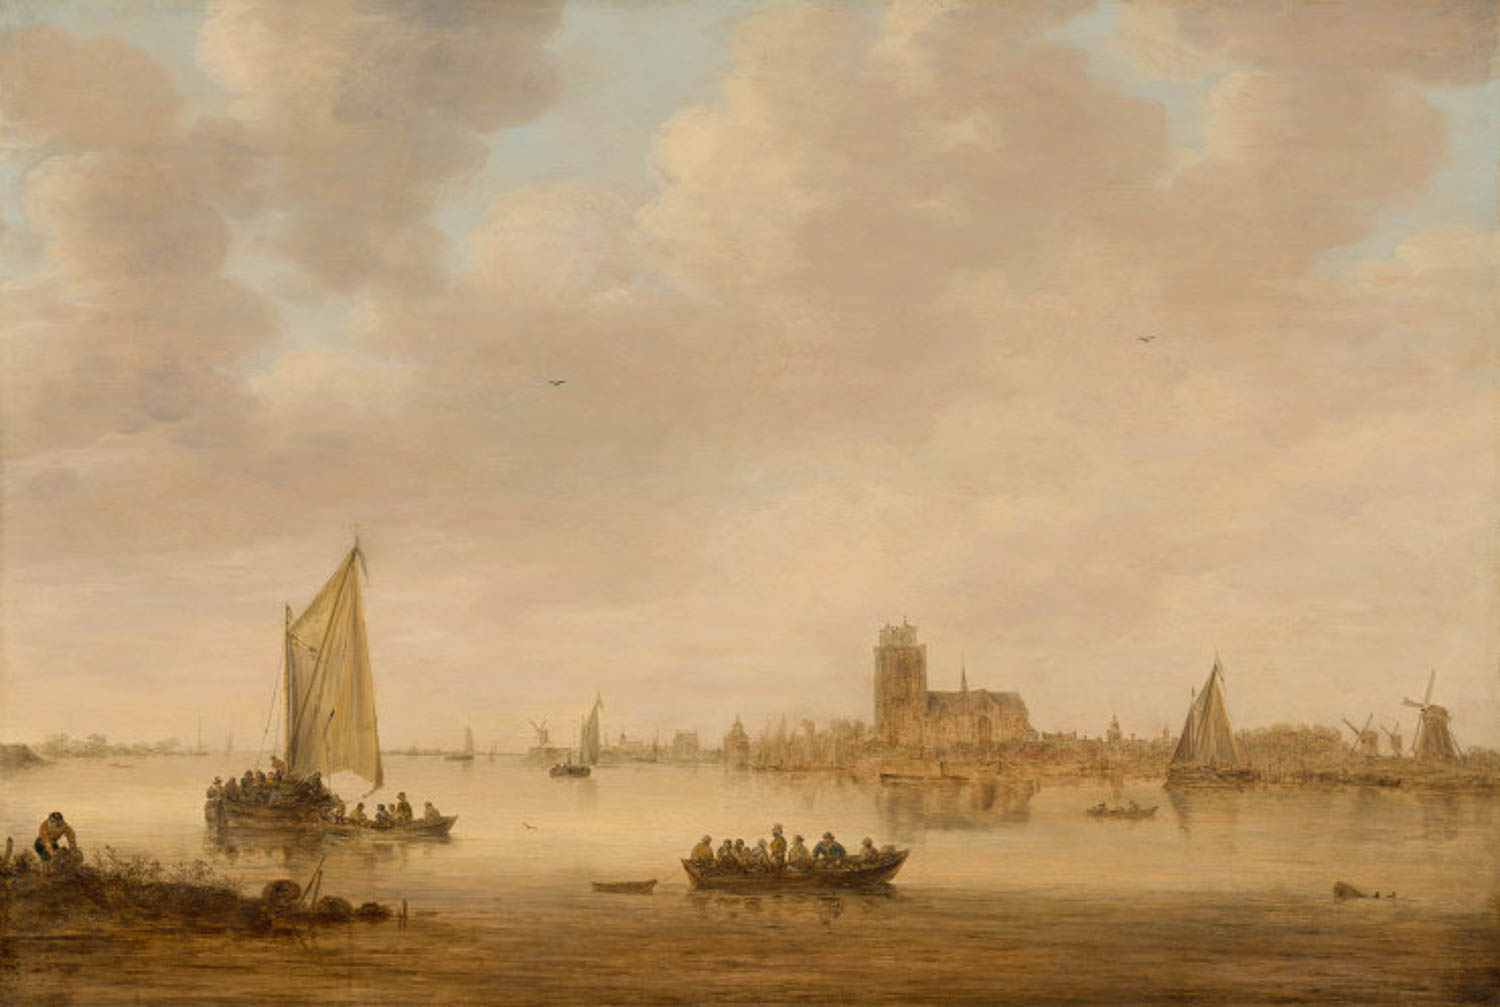 Jan van Goyen, Dordrecht from the Dordste kil